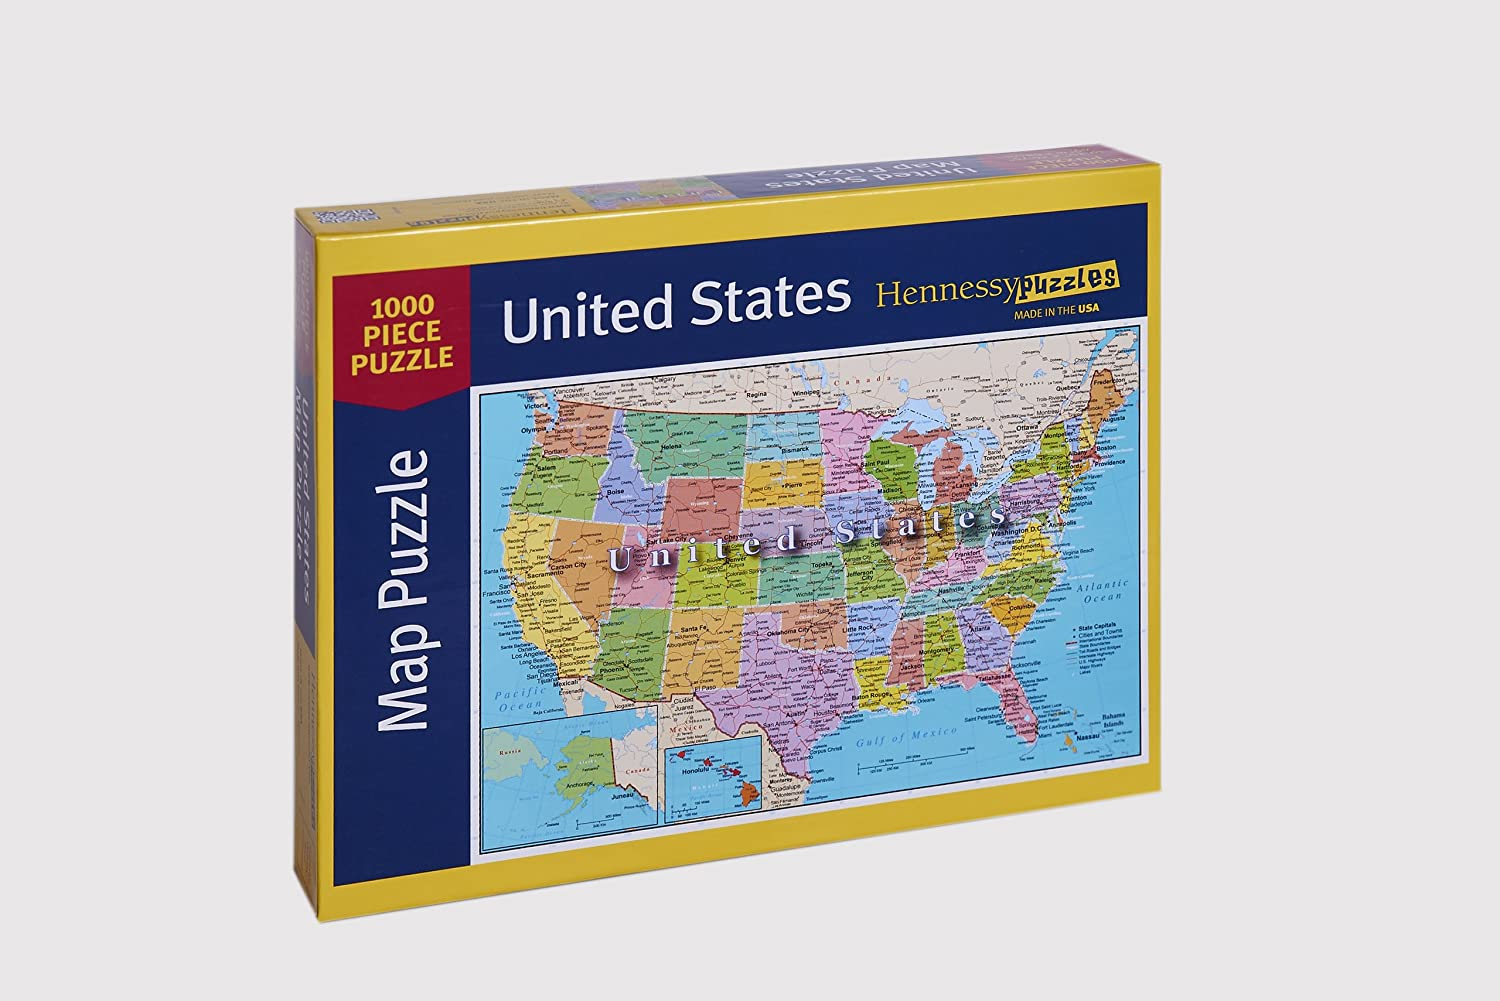 Amazon united states of america map 1000 piece jigsaw puzzle amazon united states of america map 1000 piece jigsaw puzzle highways rivers state capitals toys games ccuart Gallery